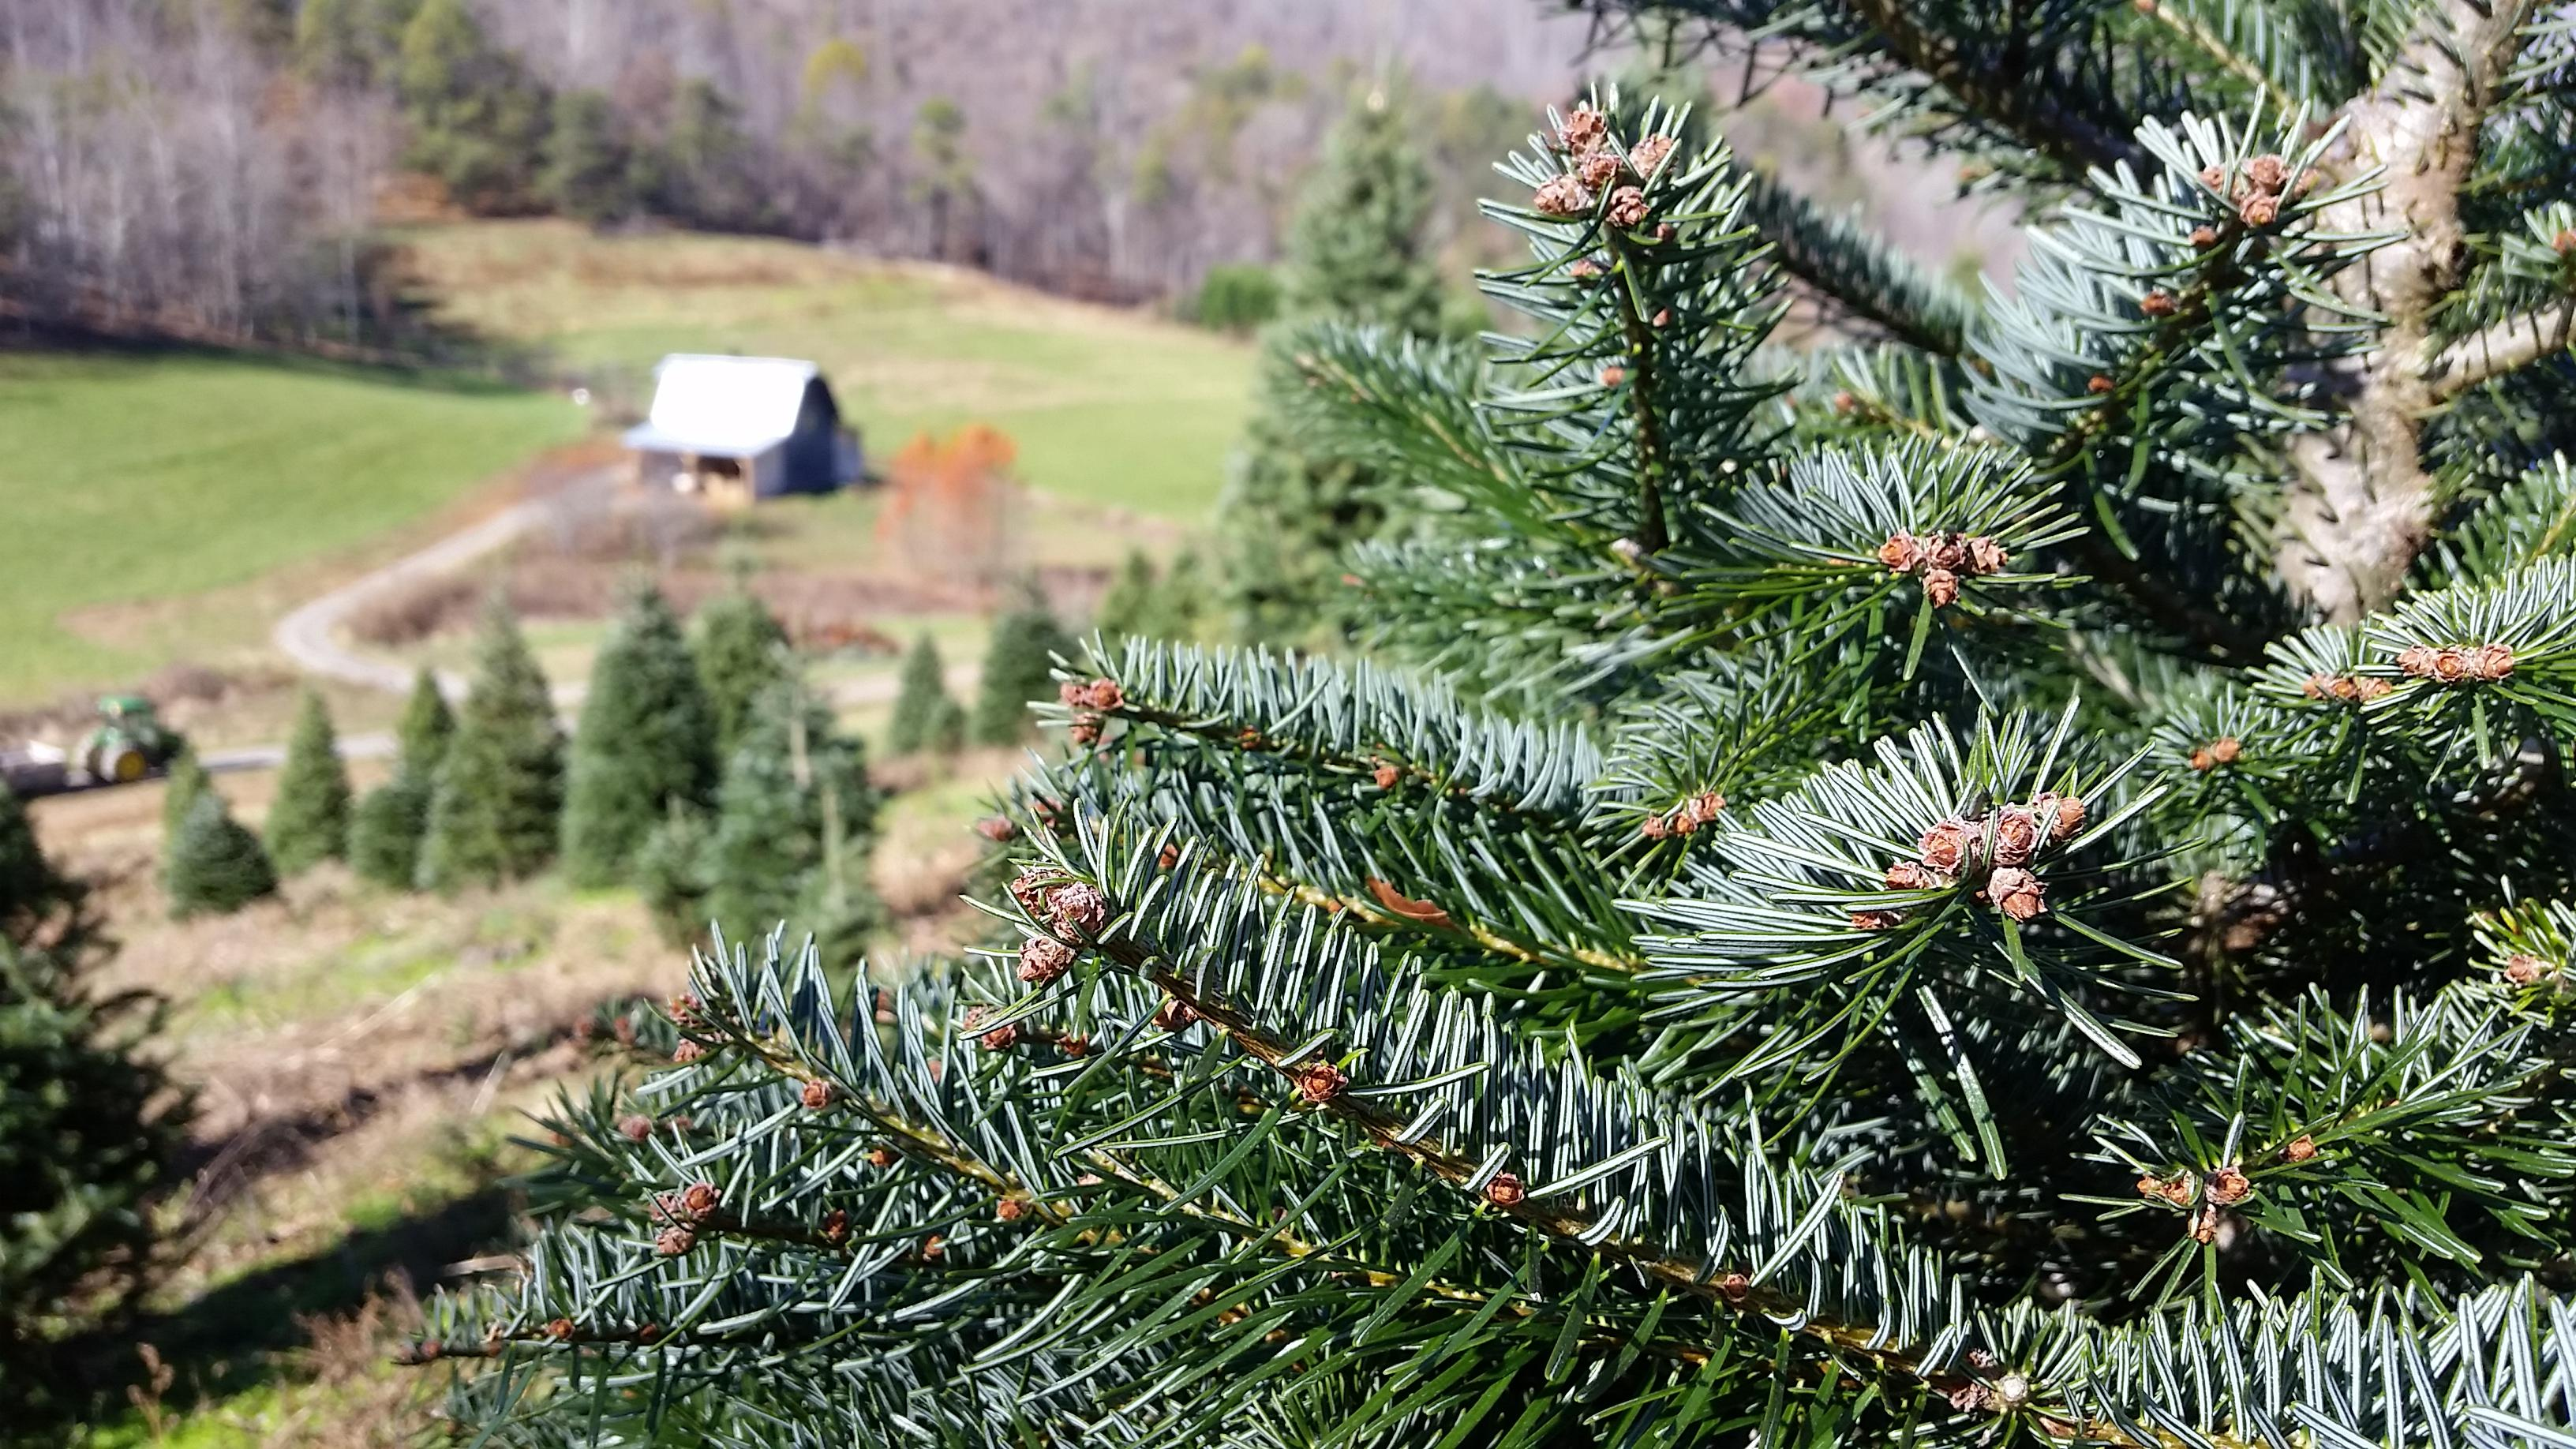 Sandy Hollar Farms produces mostly Fraser fir, but also has a few exotic varieties including Turkish fir, Northern fir, and White Pine. (Photo credit: WLOS Staff)